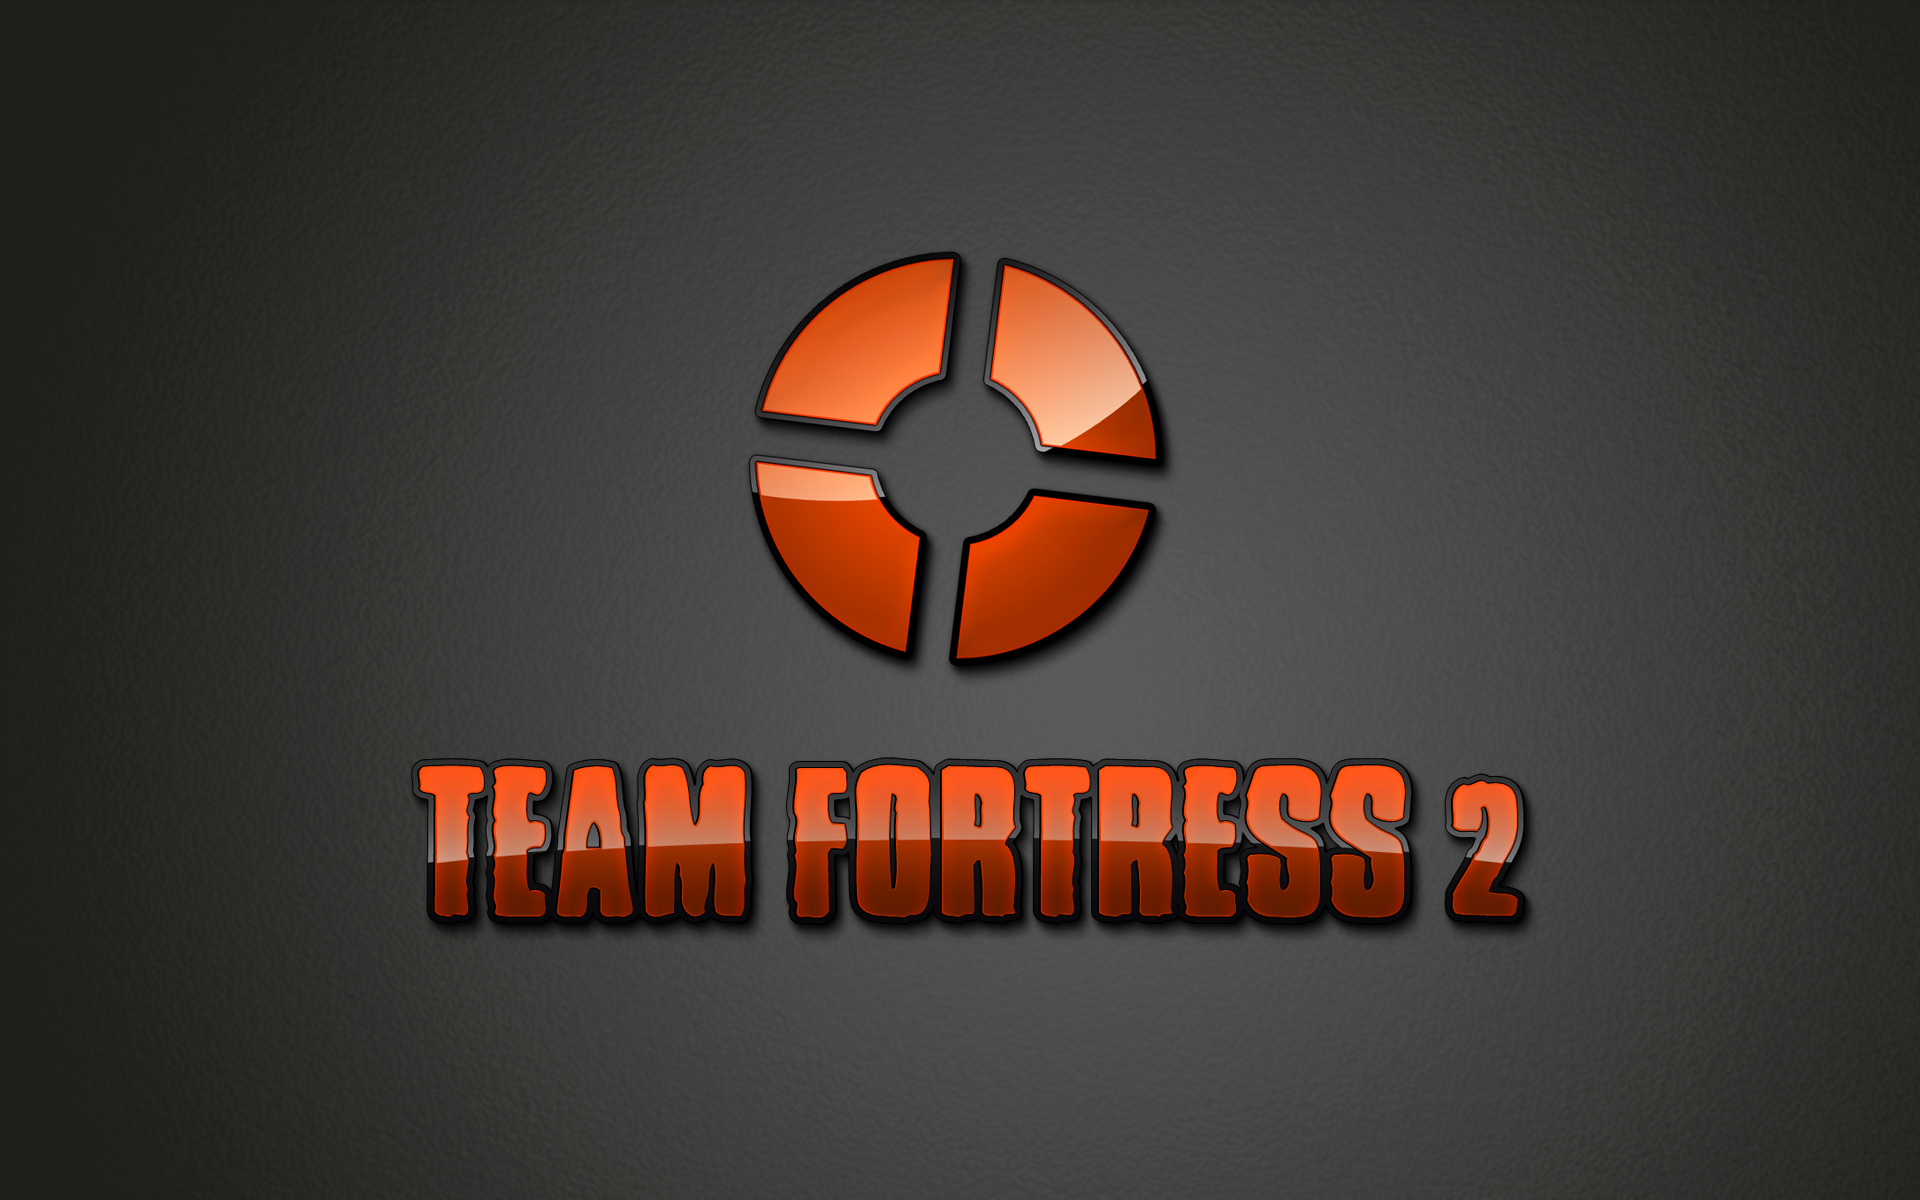 My wallpaper thread h ard forum - Tf2 logo wallpaper ...